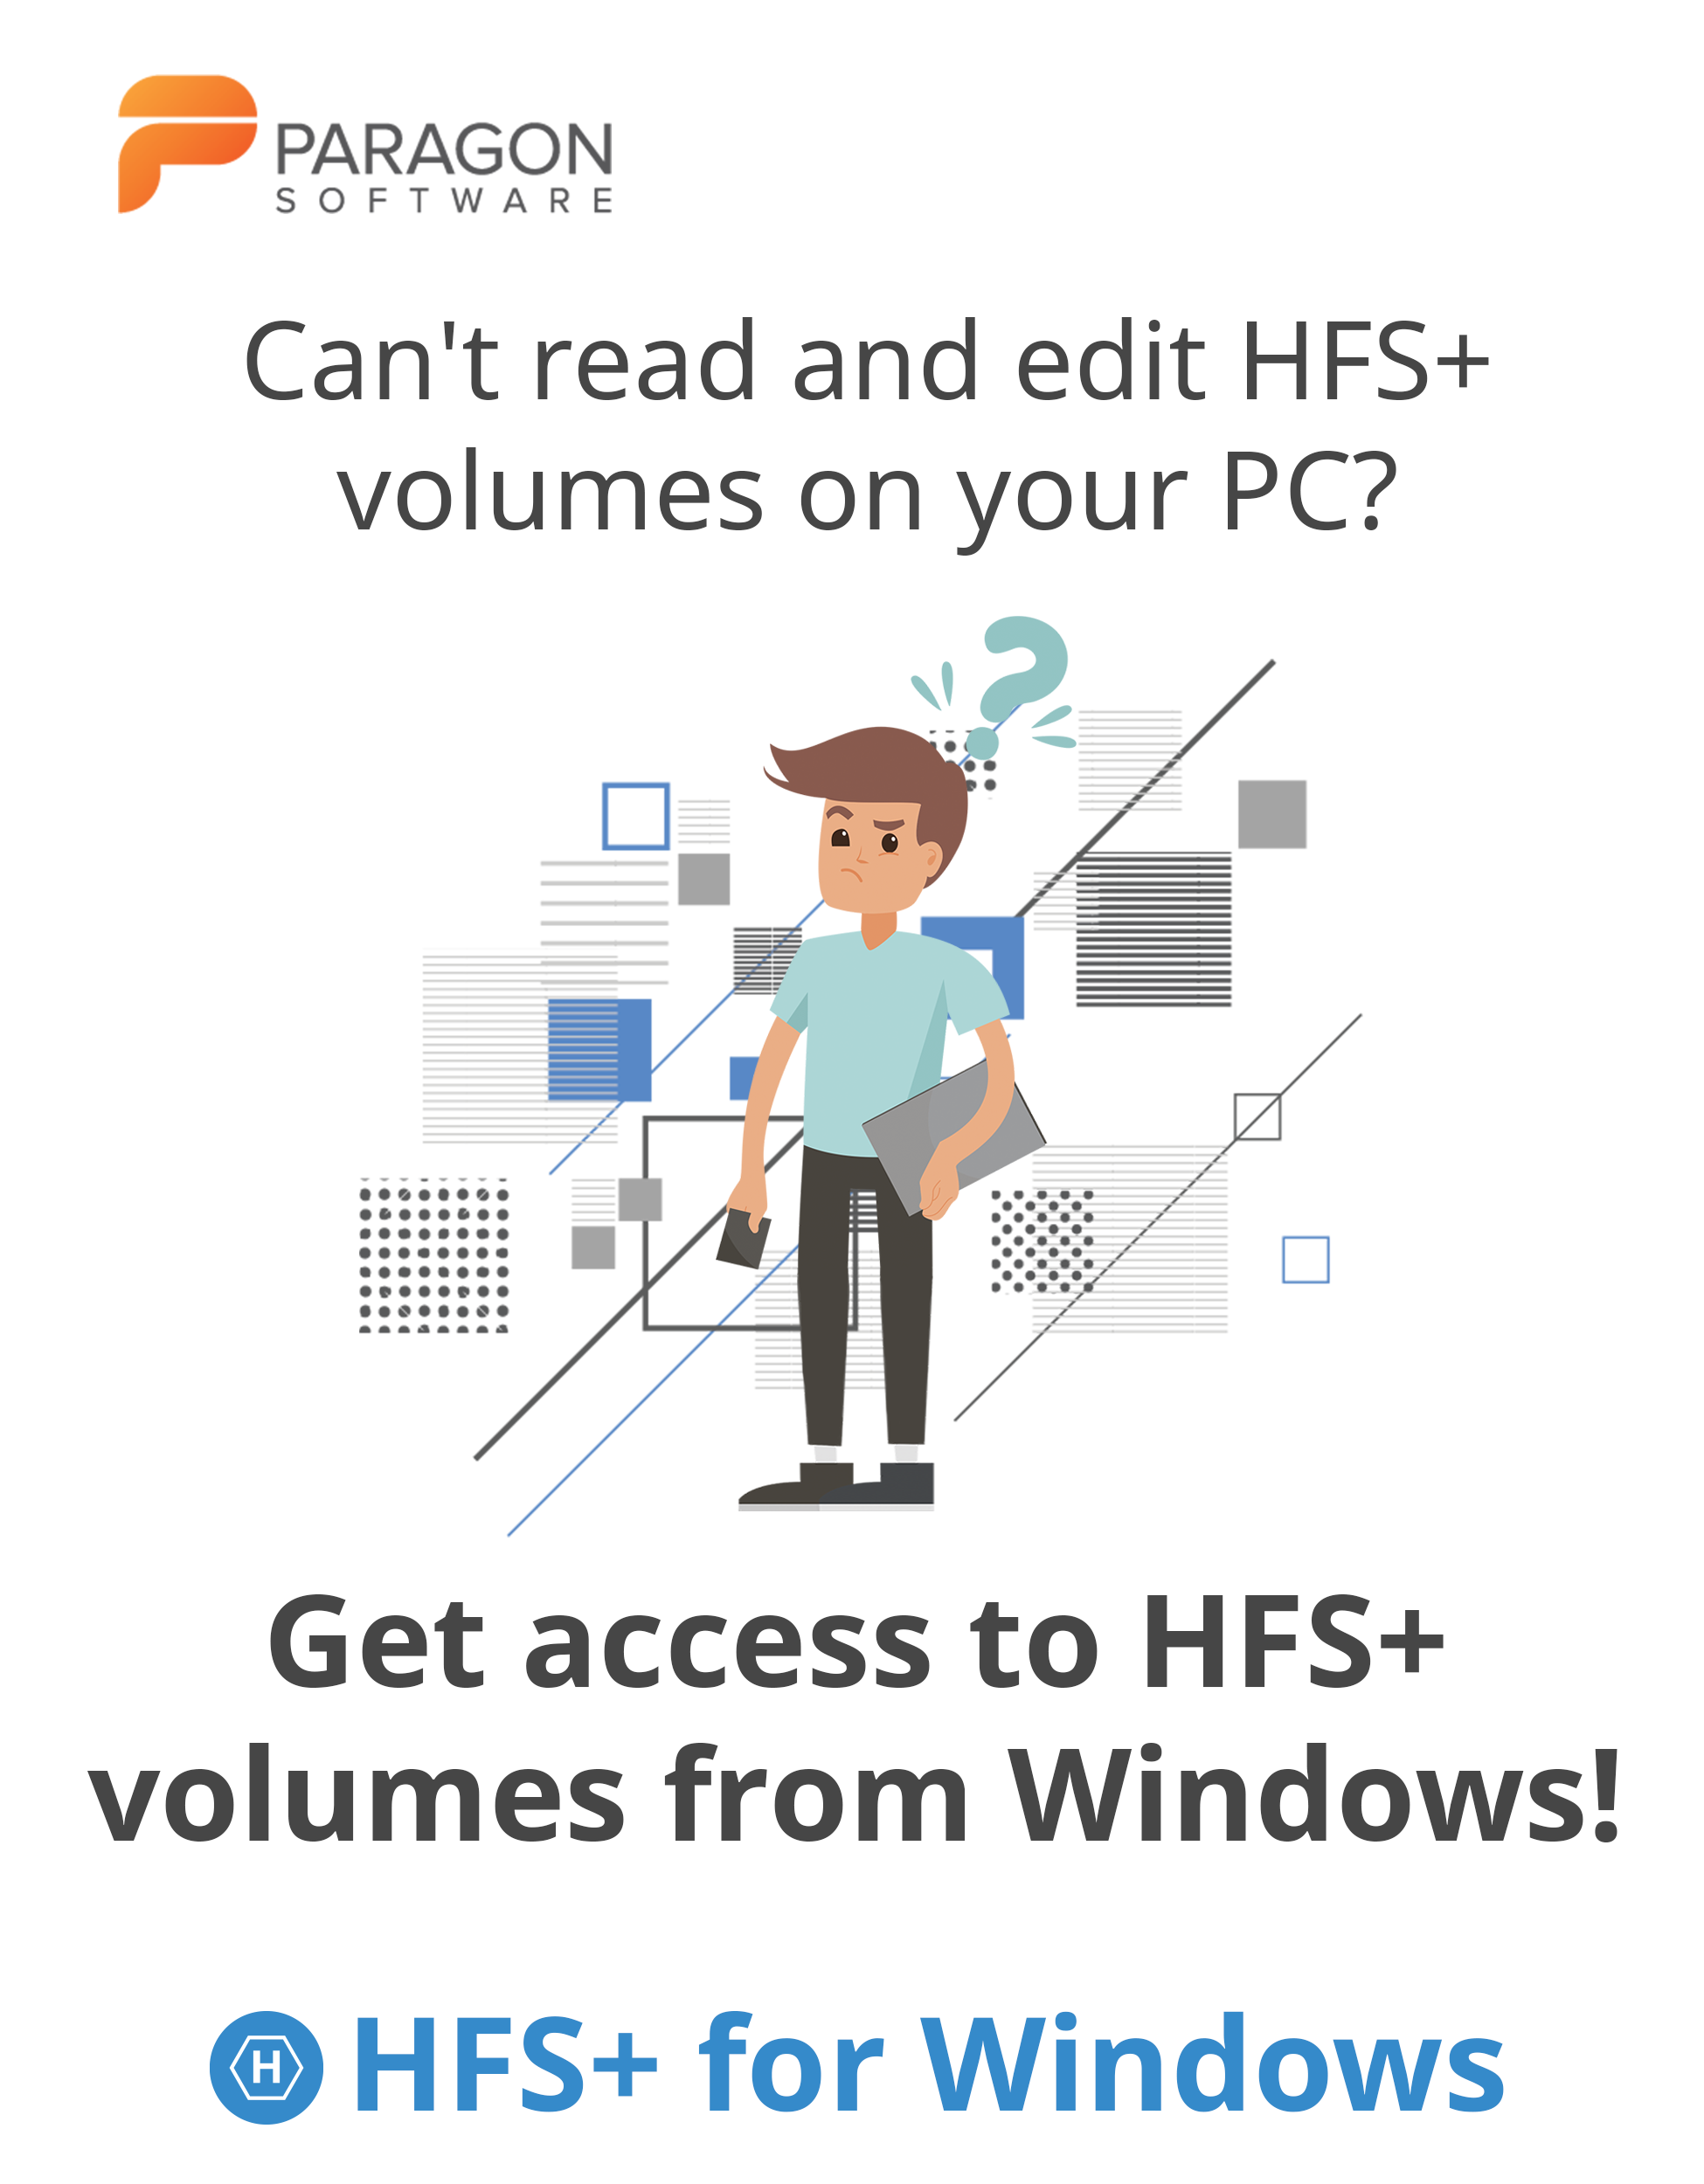 HFS_for_Windows_by_Paragon_Software